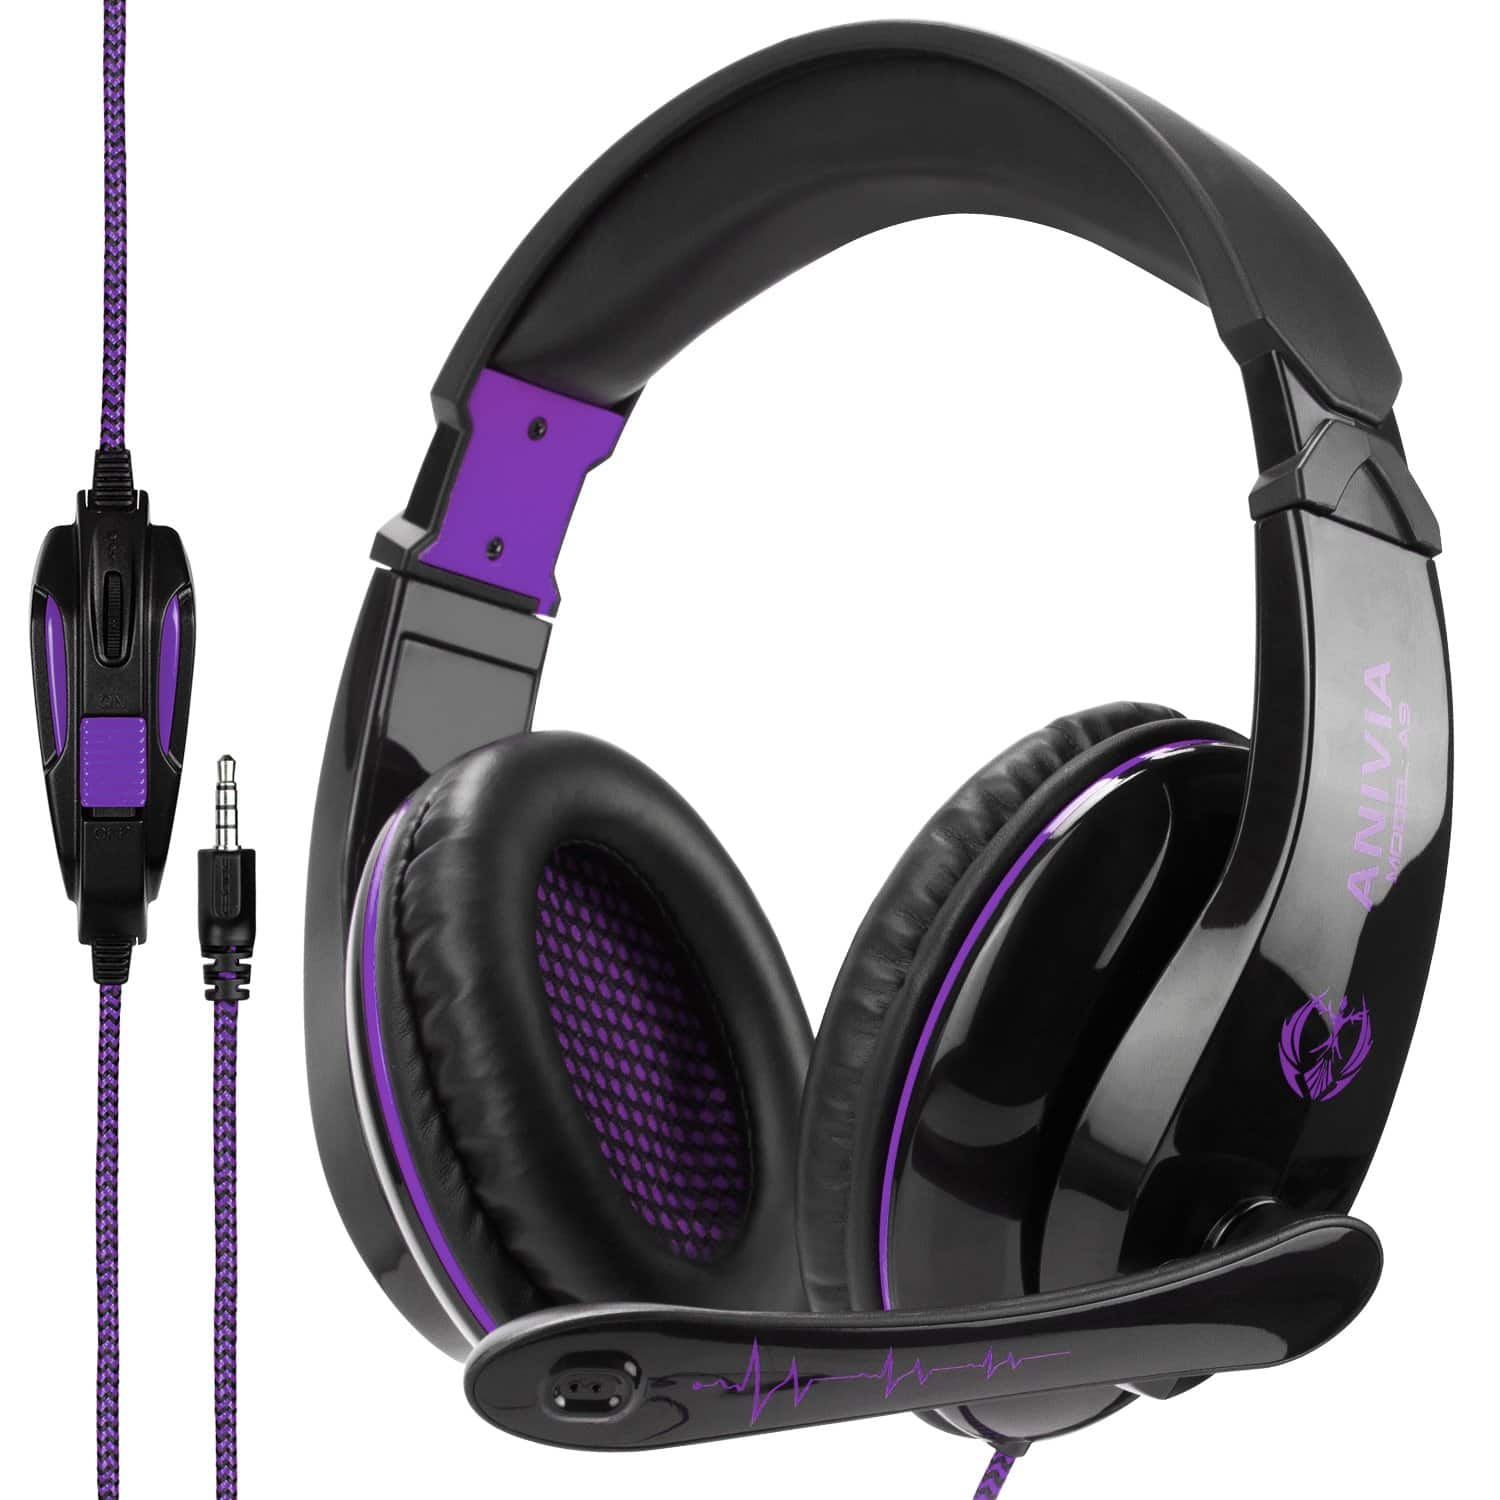 A9 Stereo Gaming Headset for PS4 Xbox One Nintendo Switch Phone Tablet Mac Games PC Computer-13.99+Free Shipping